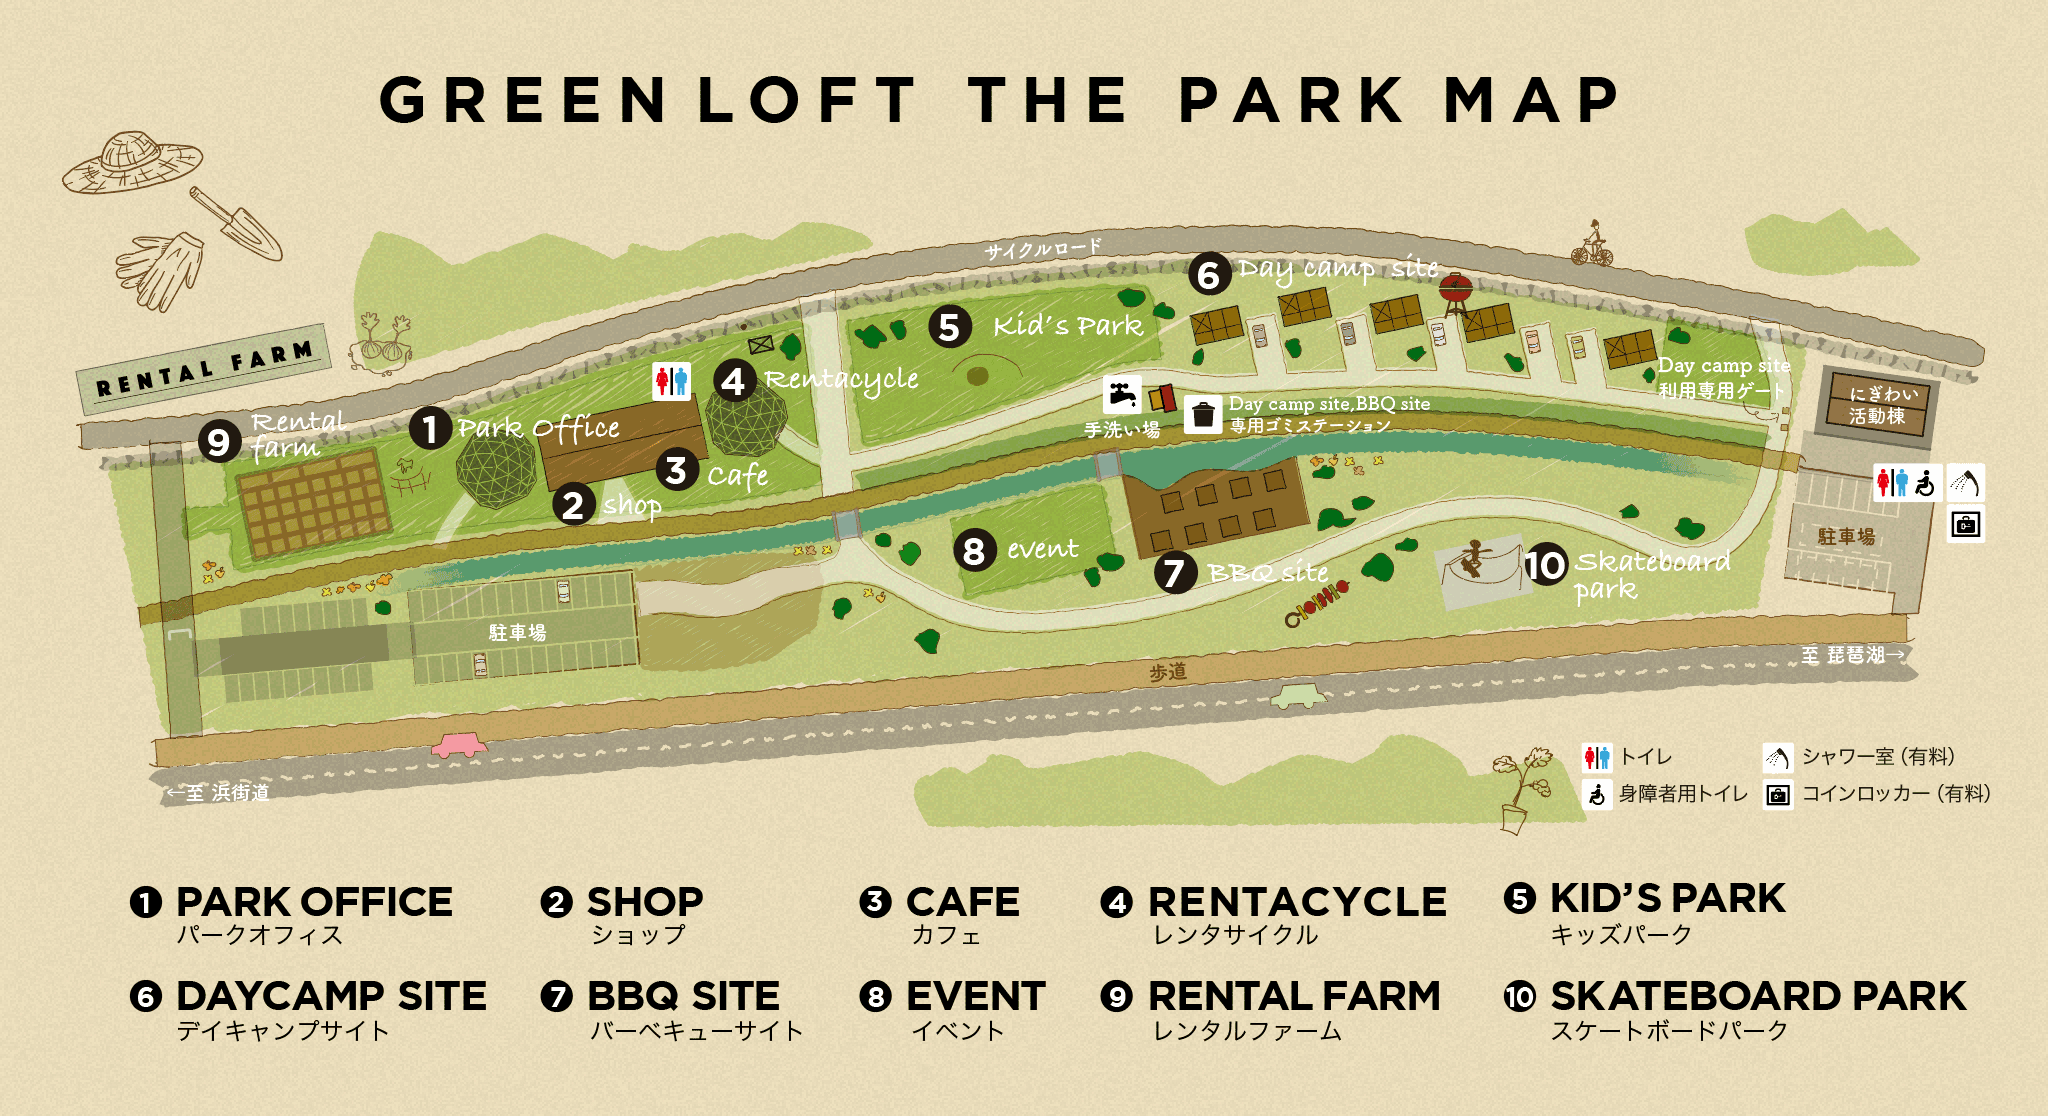 GREEN LOFT THE PARK MAP